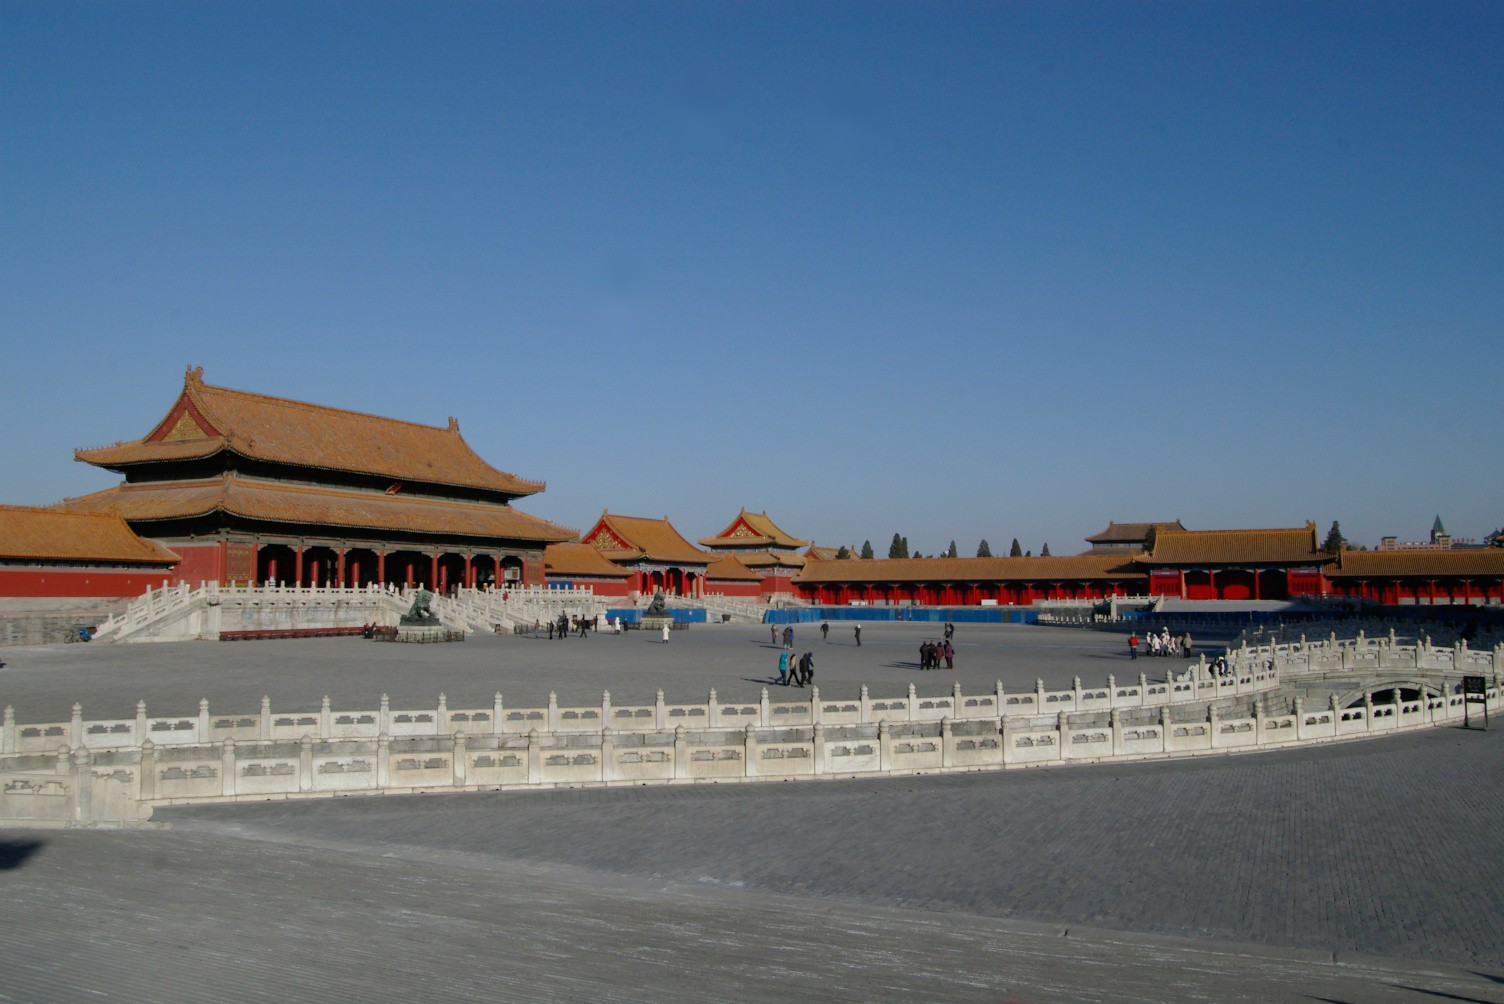 Palace Museum receives over 100 million visitors since 2012